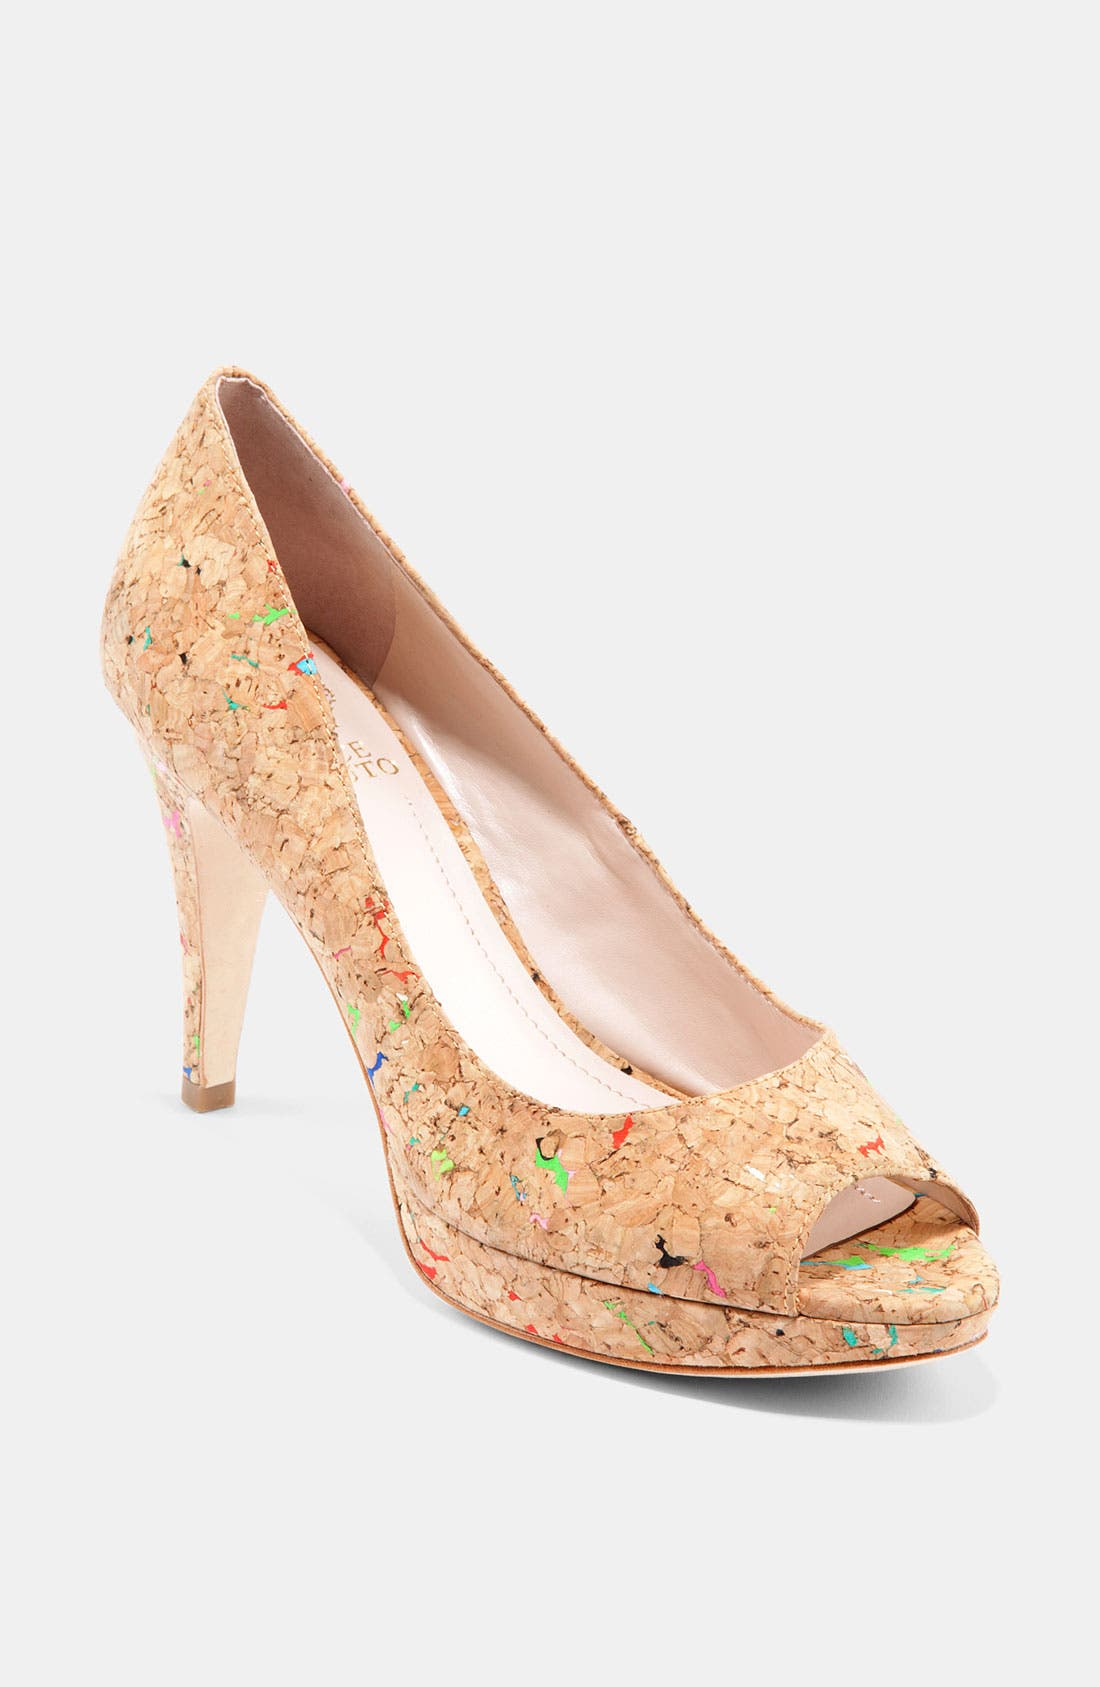 Alternate Image 1 Selected - Vince Camuto 'Ashlynn' Pump